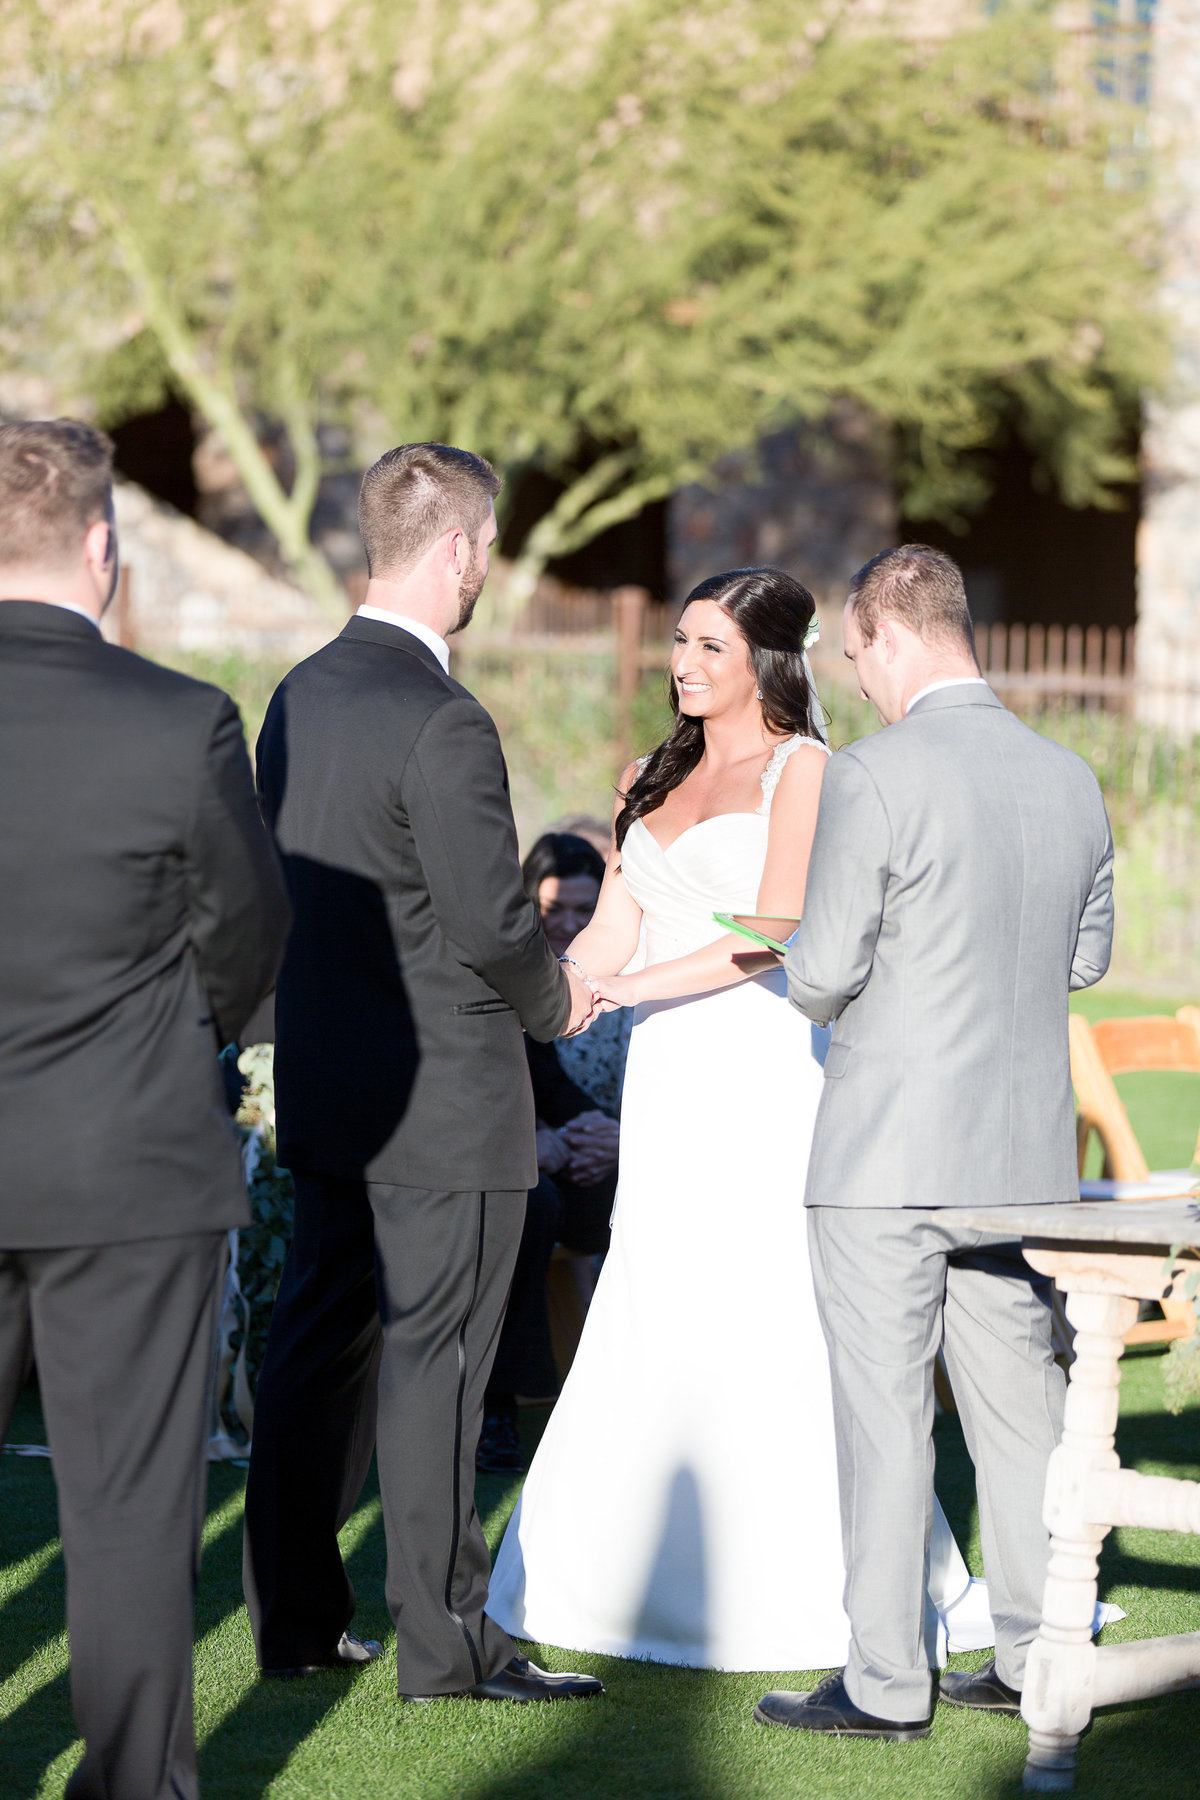 Imoni-Events-Amy-Jordan-DC-Ranch-0715